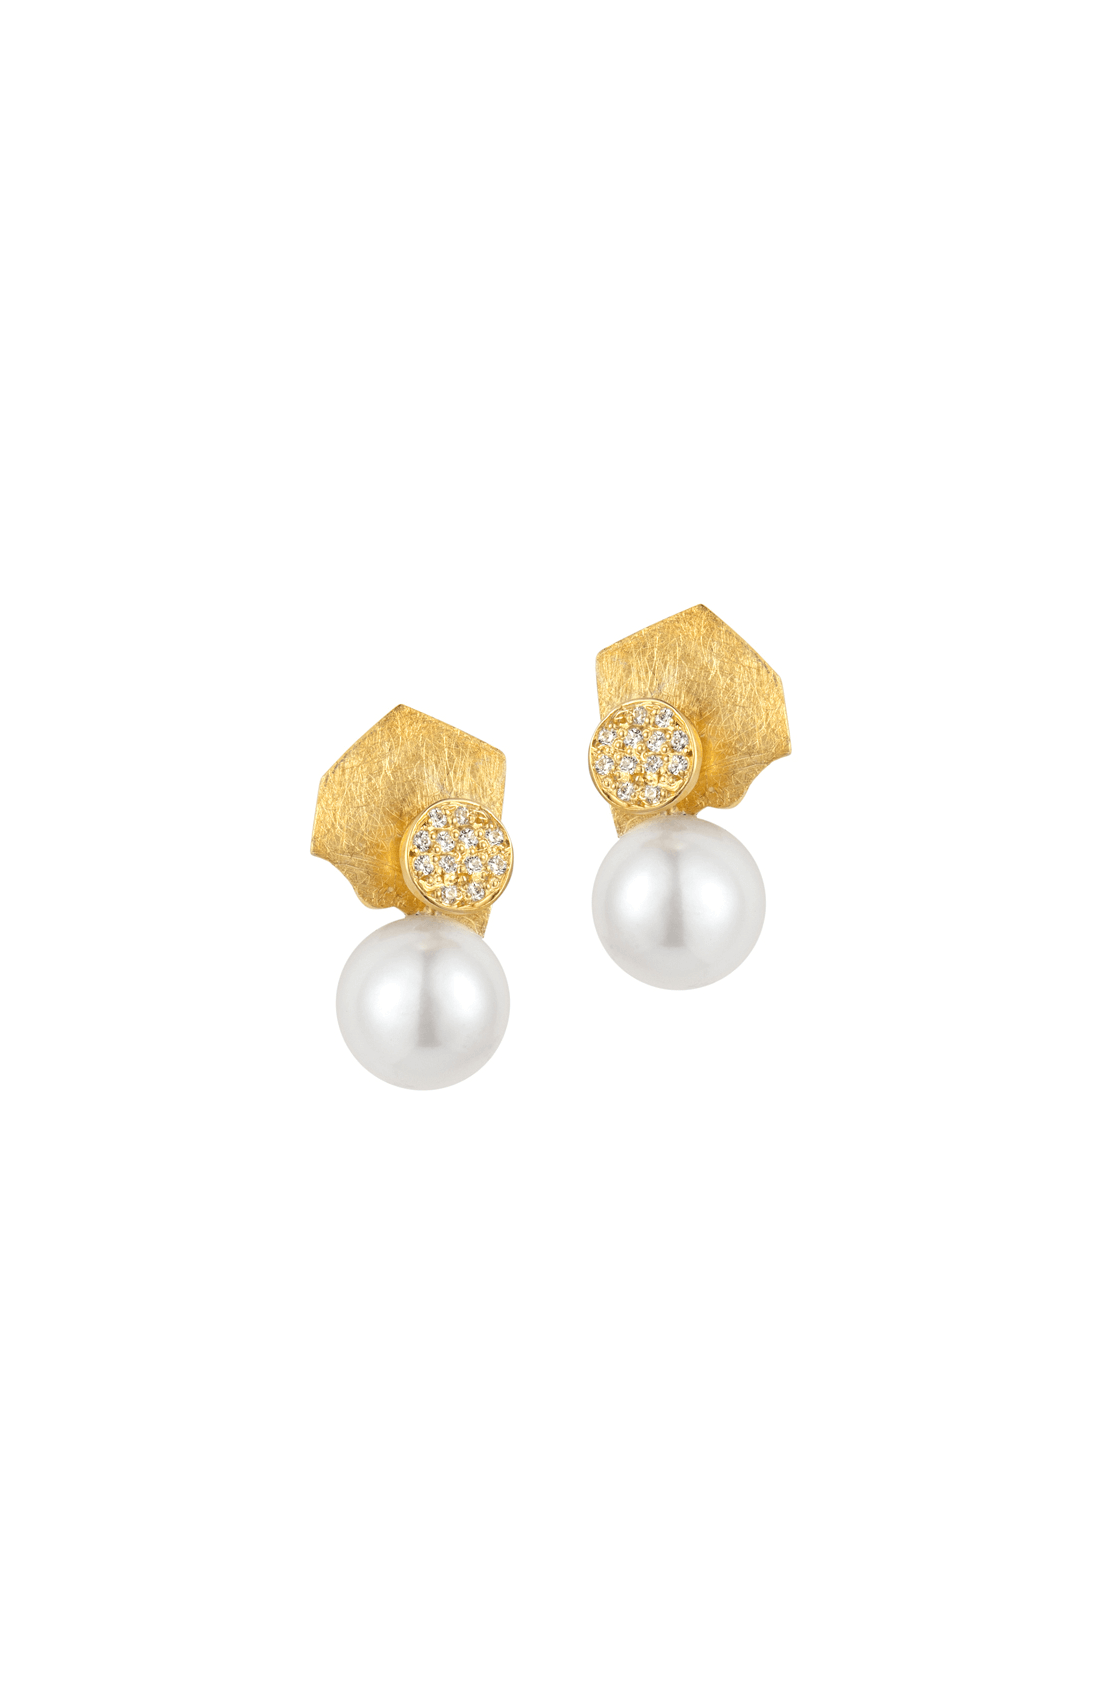 FRE002 - Fragments Pearl Short Earring